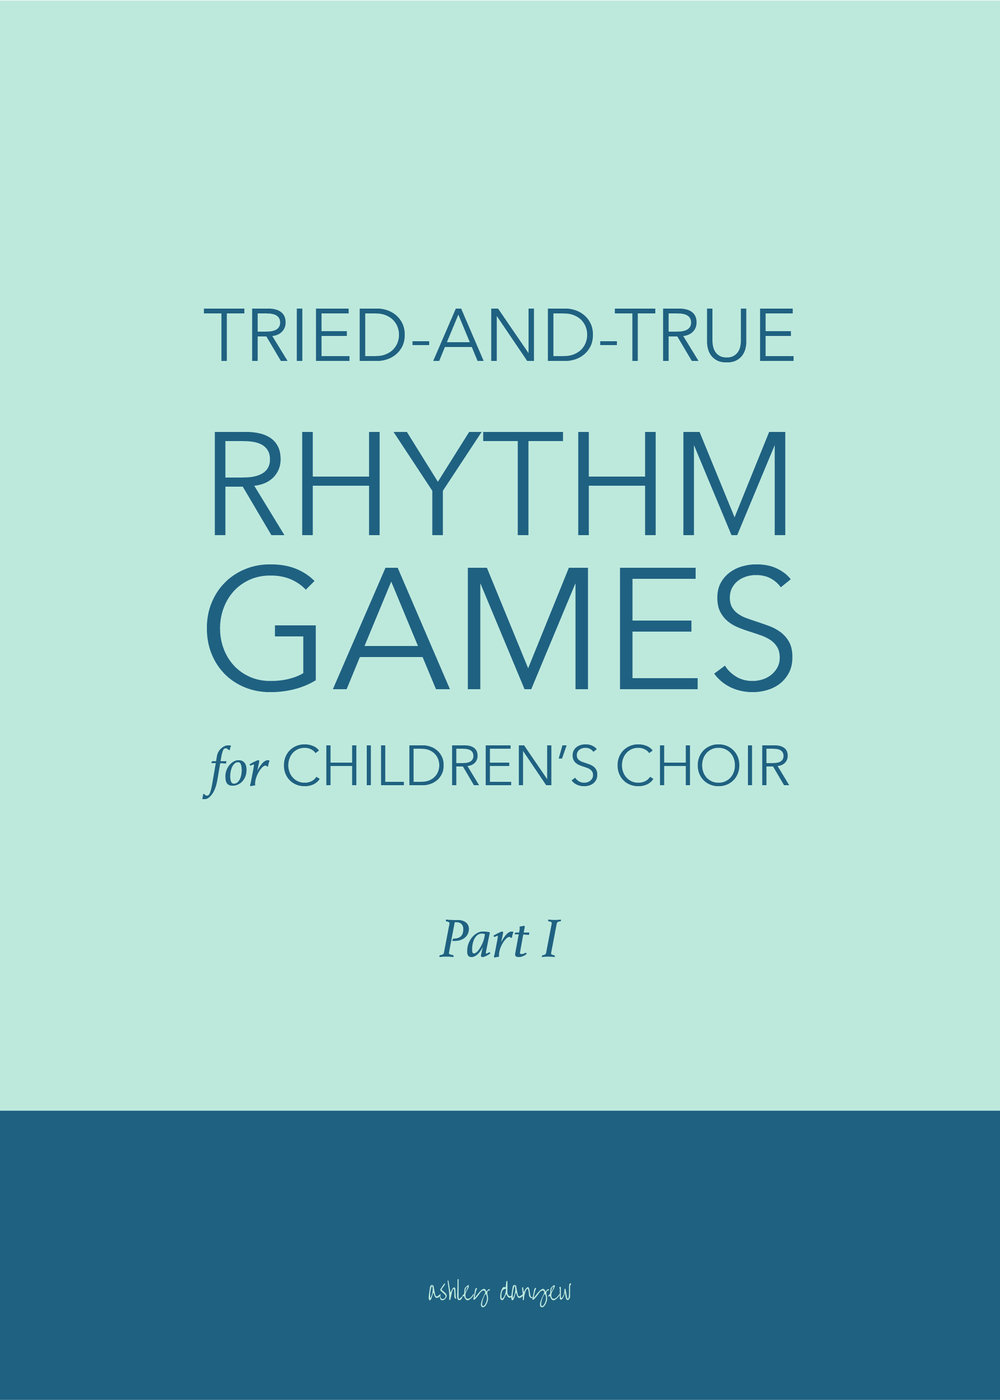 Tried-and-True-Rhythm-Games-for-Childrens-Choir-01.png